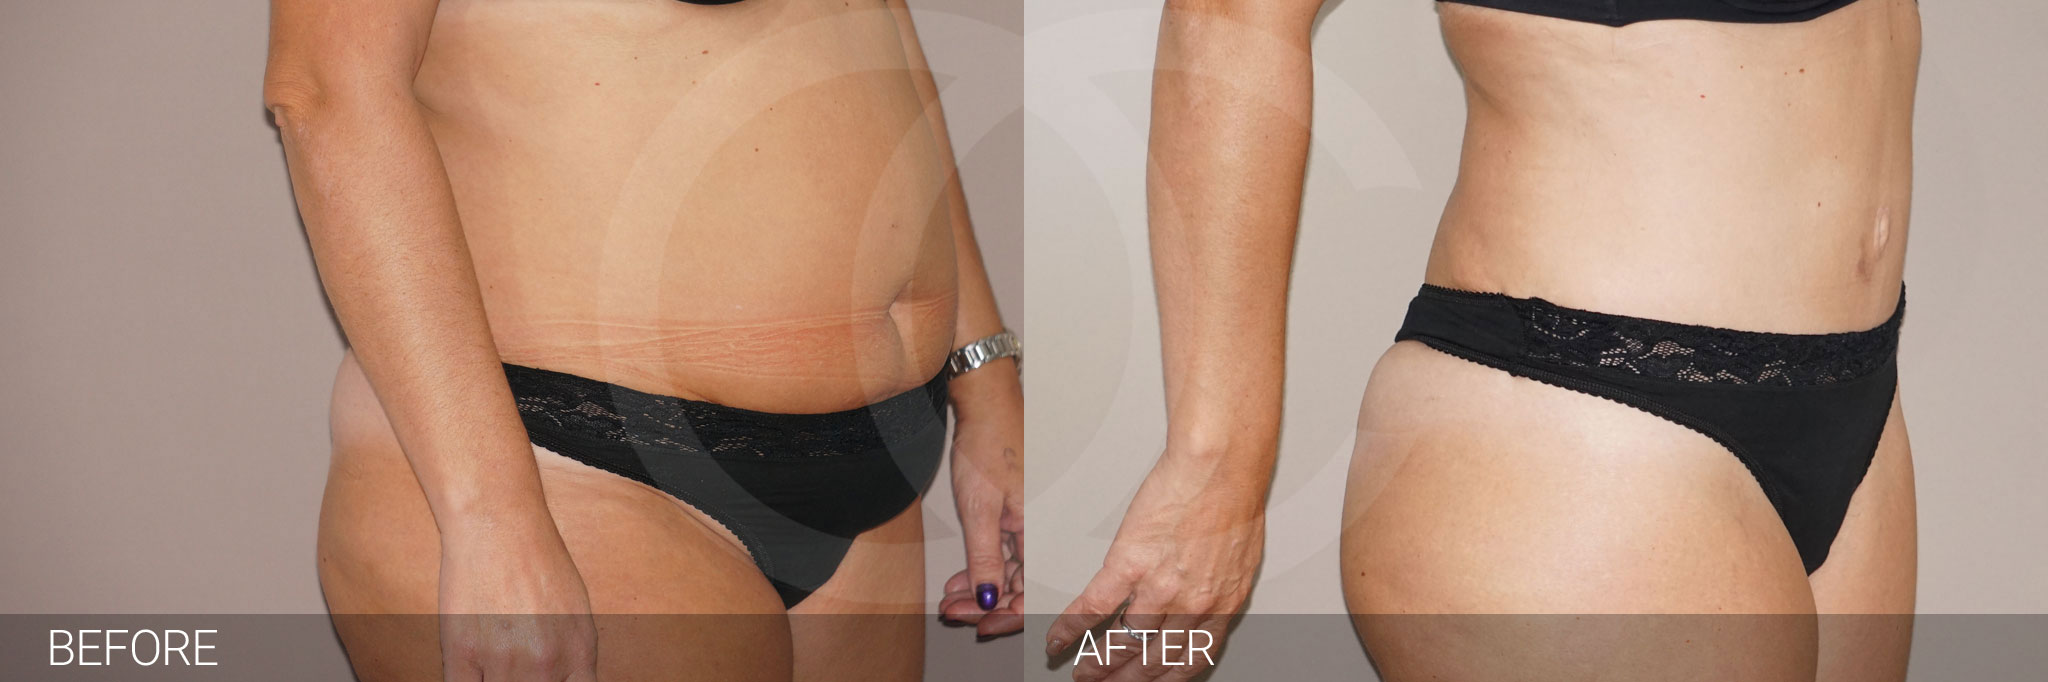 Tummy tuck photo before and after